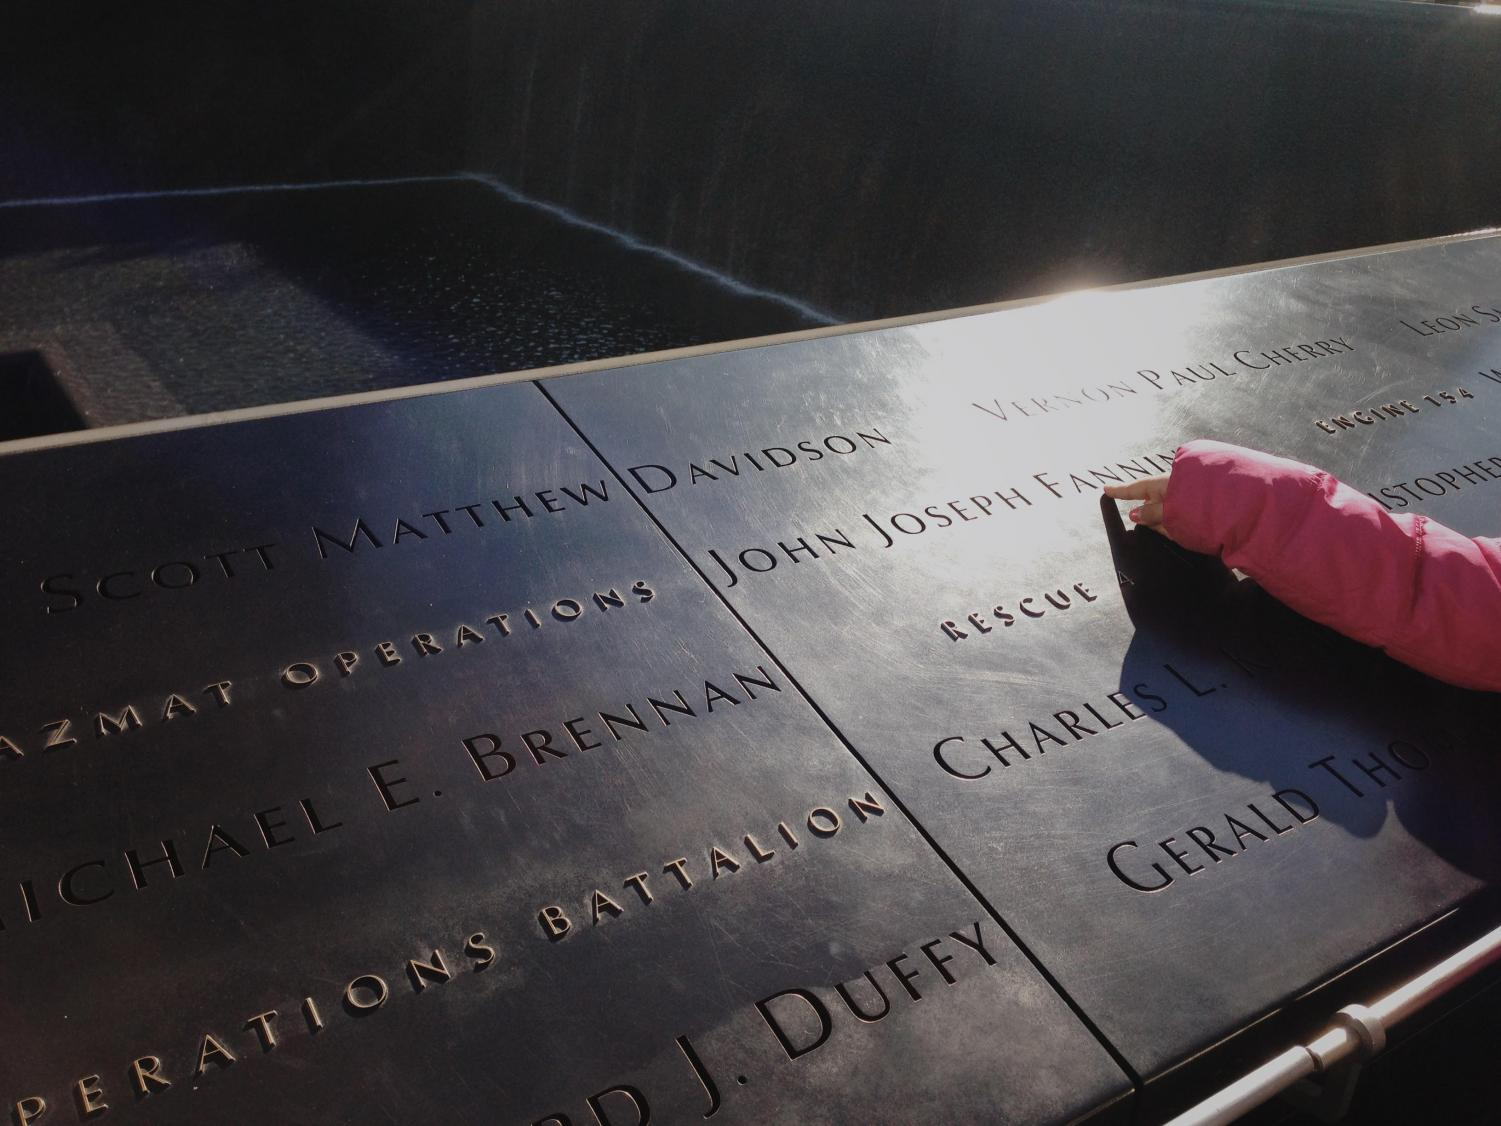 CHS Faculty Share Their Memories of 9/11